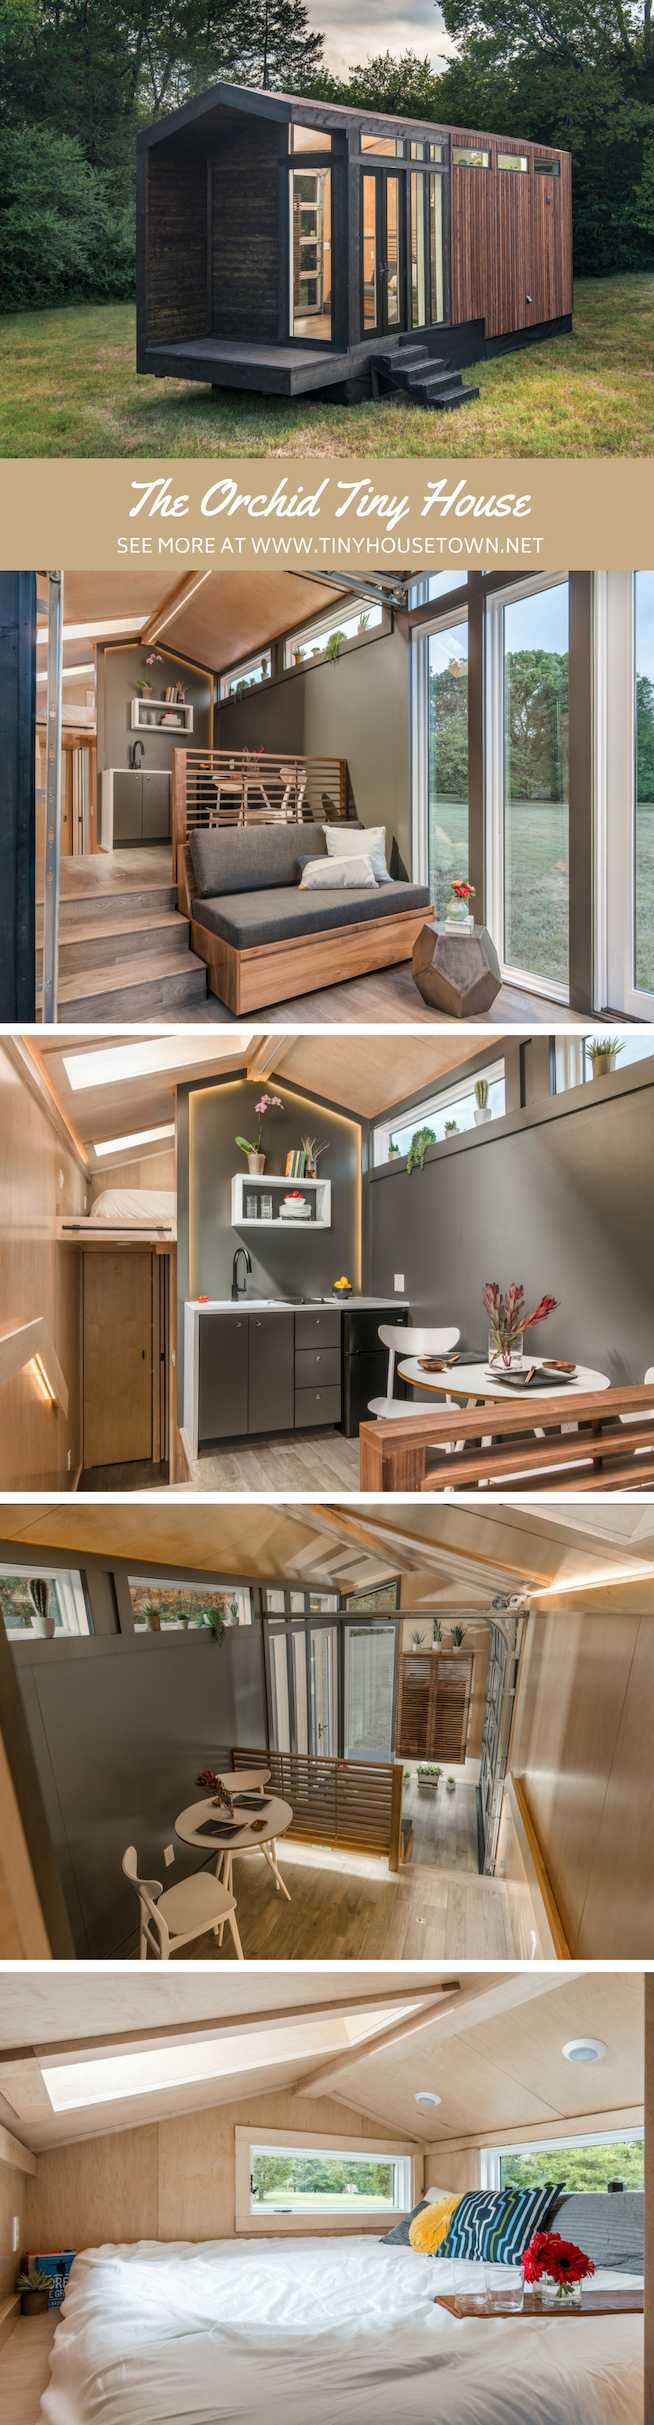 The Orchid Tiny House #tinyhome